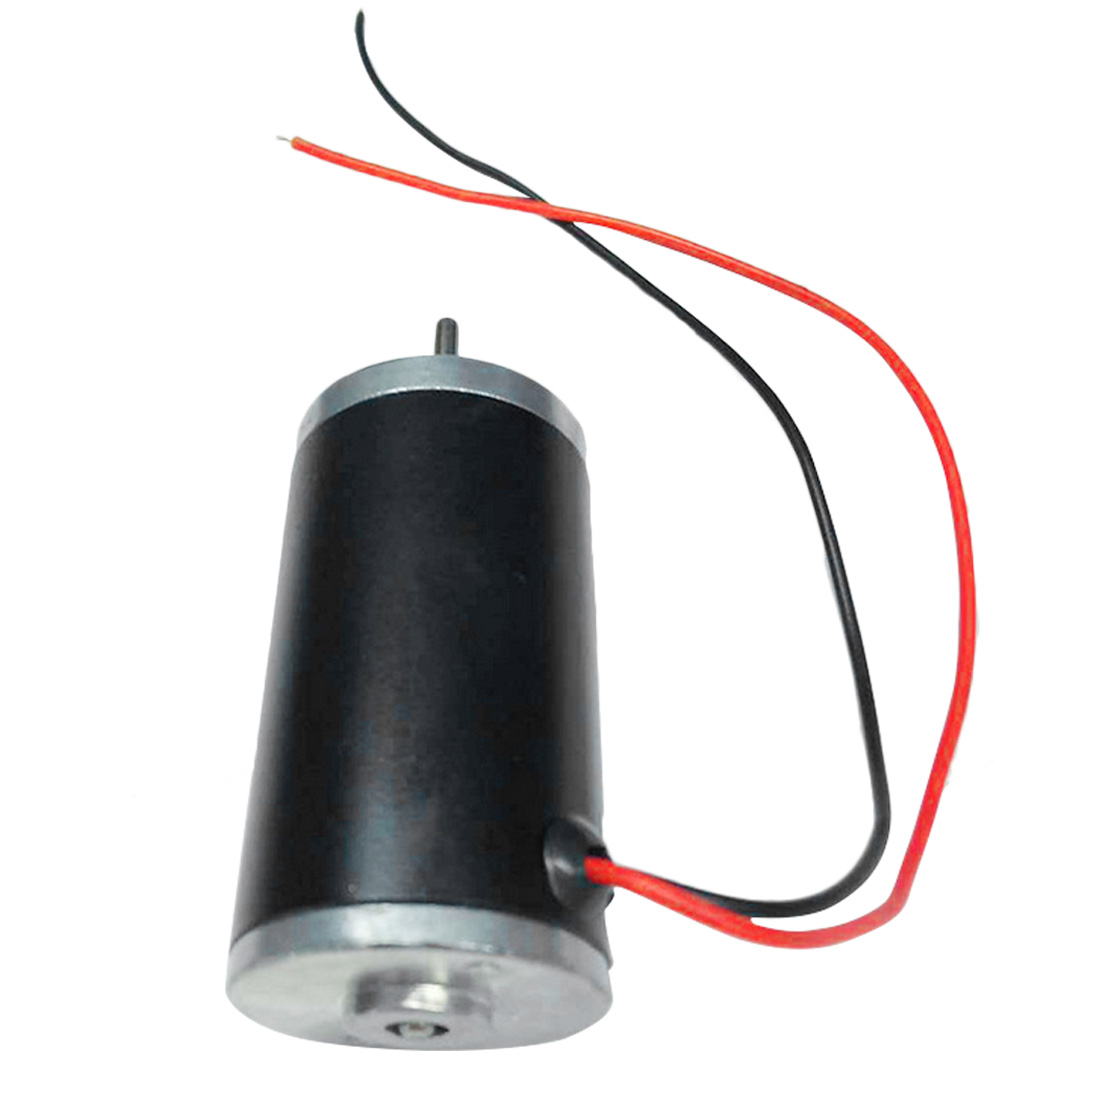 DC Motor 6V-24V Powerful Electric Motors Adjust Reversed High Speed Motor Long Life Low Noise Permanent MagnetDC Motor 6V-24V Powerful Electric Motors Adjust Reversed High Speed Motor Long Life Low Noise Permanent Magnet